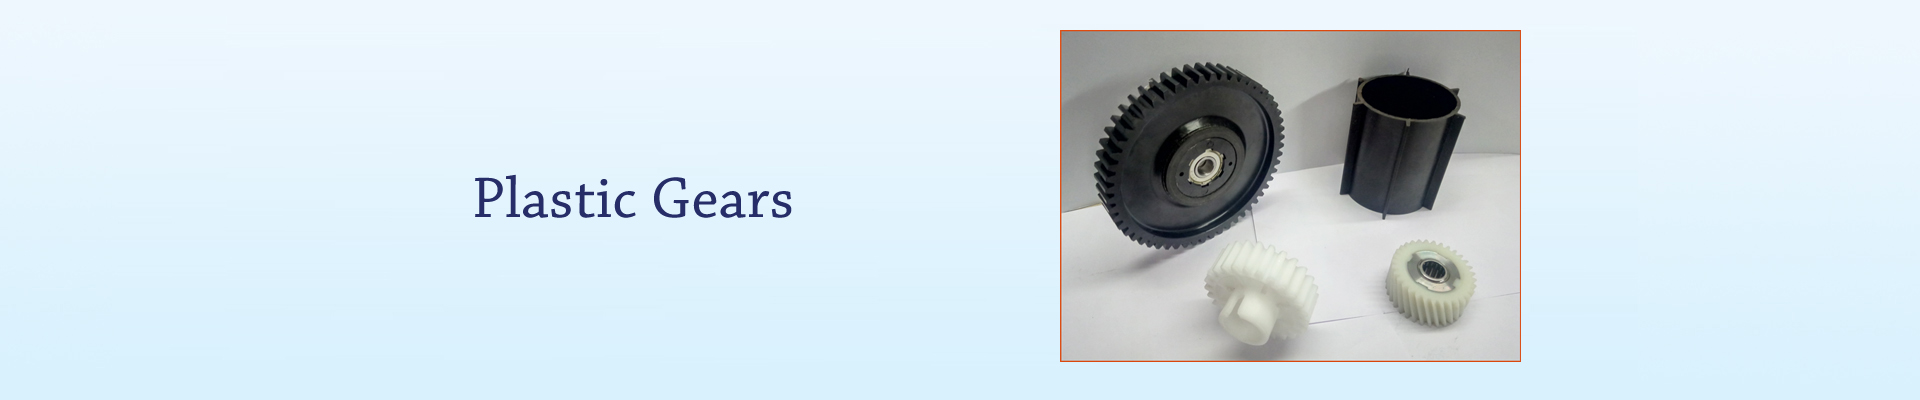 Custom Gearboxes, Heliworm Gearboxes, Hardened Ground Gears, Mumbai